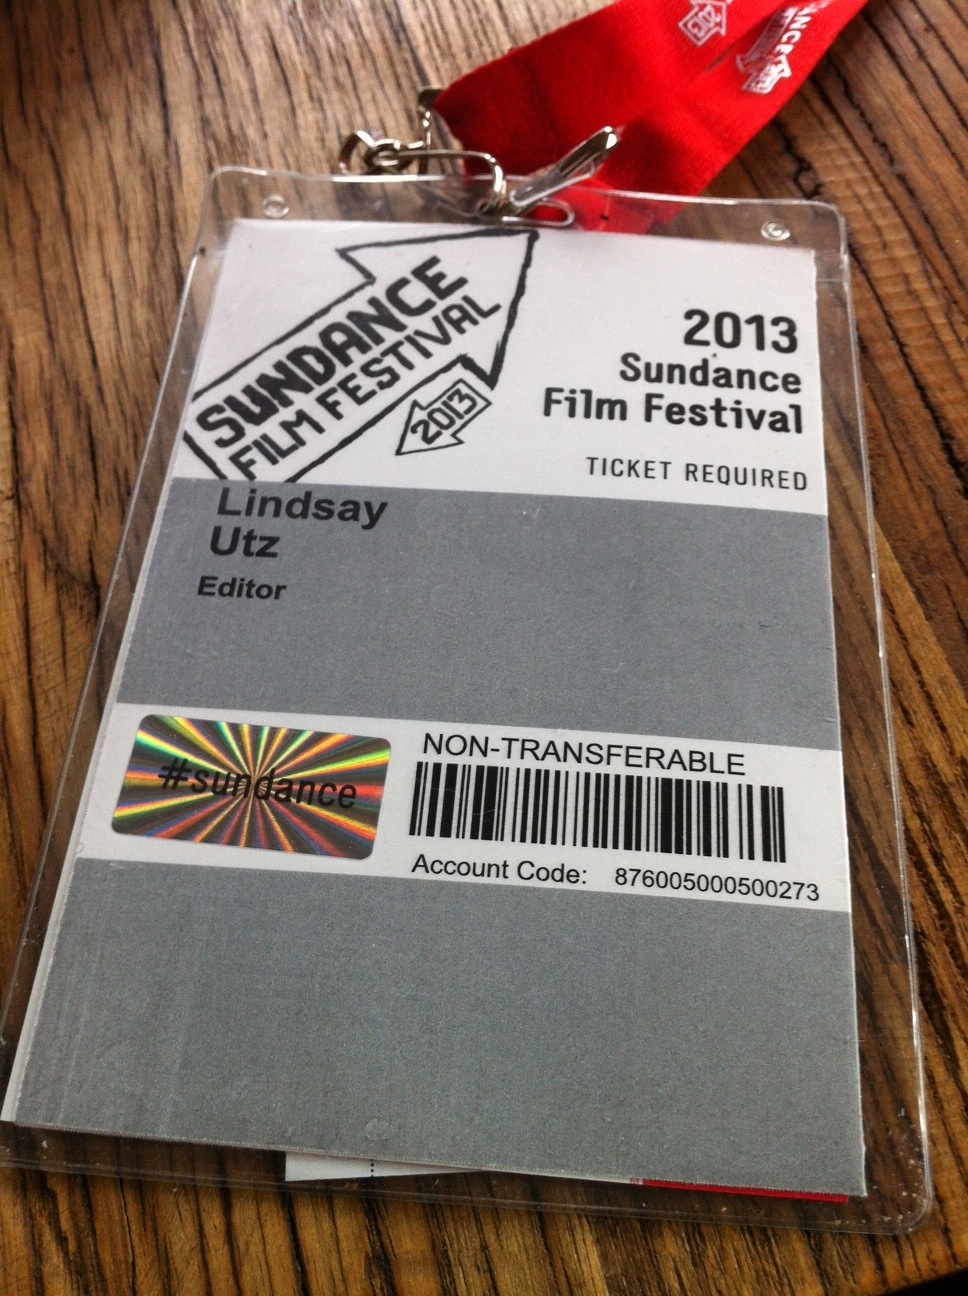 utz_sundance_2013_badge.JPG